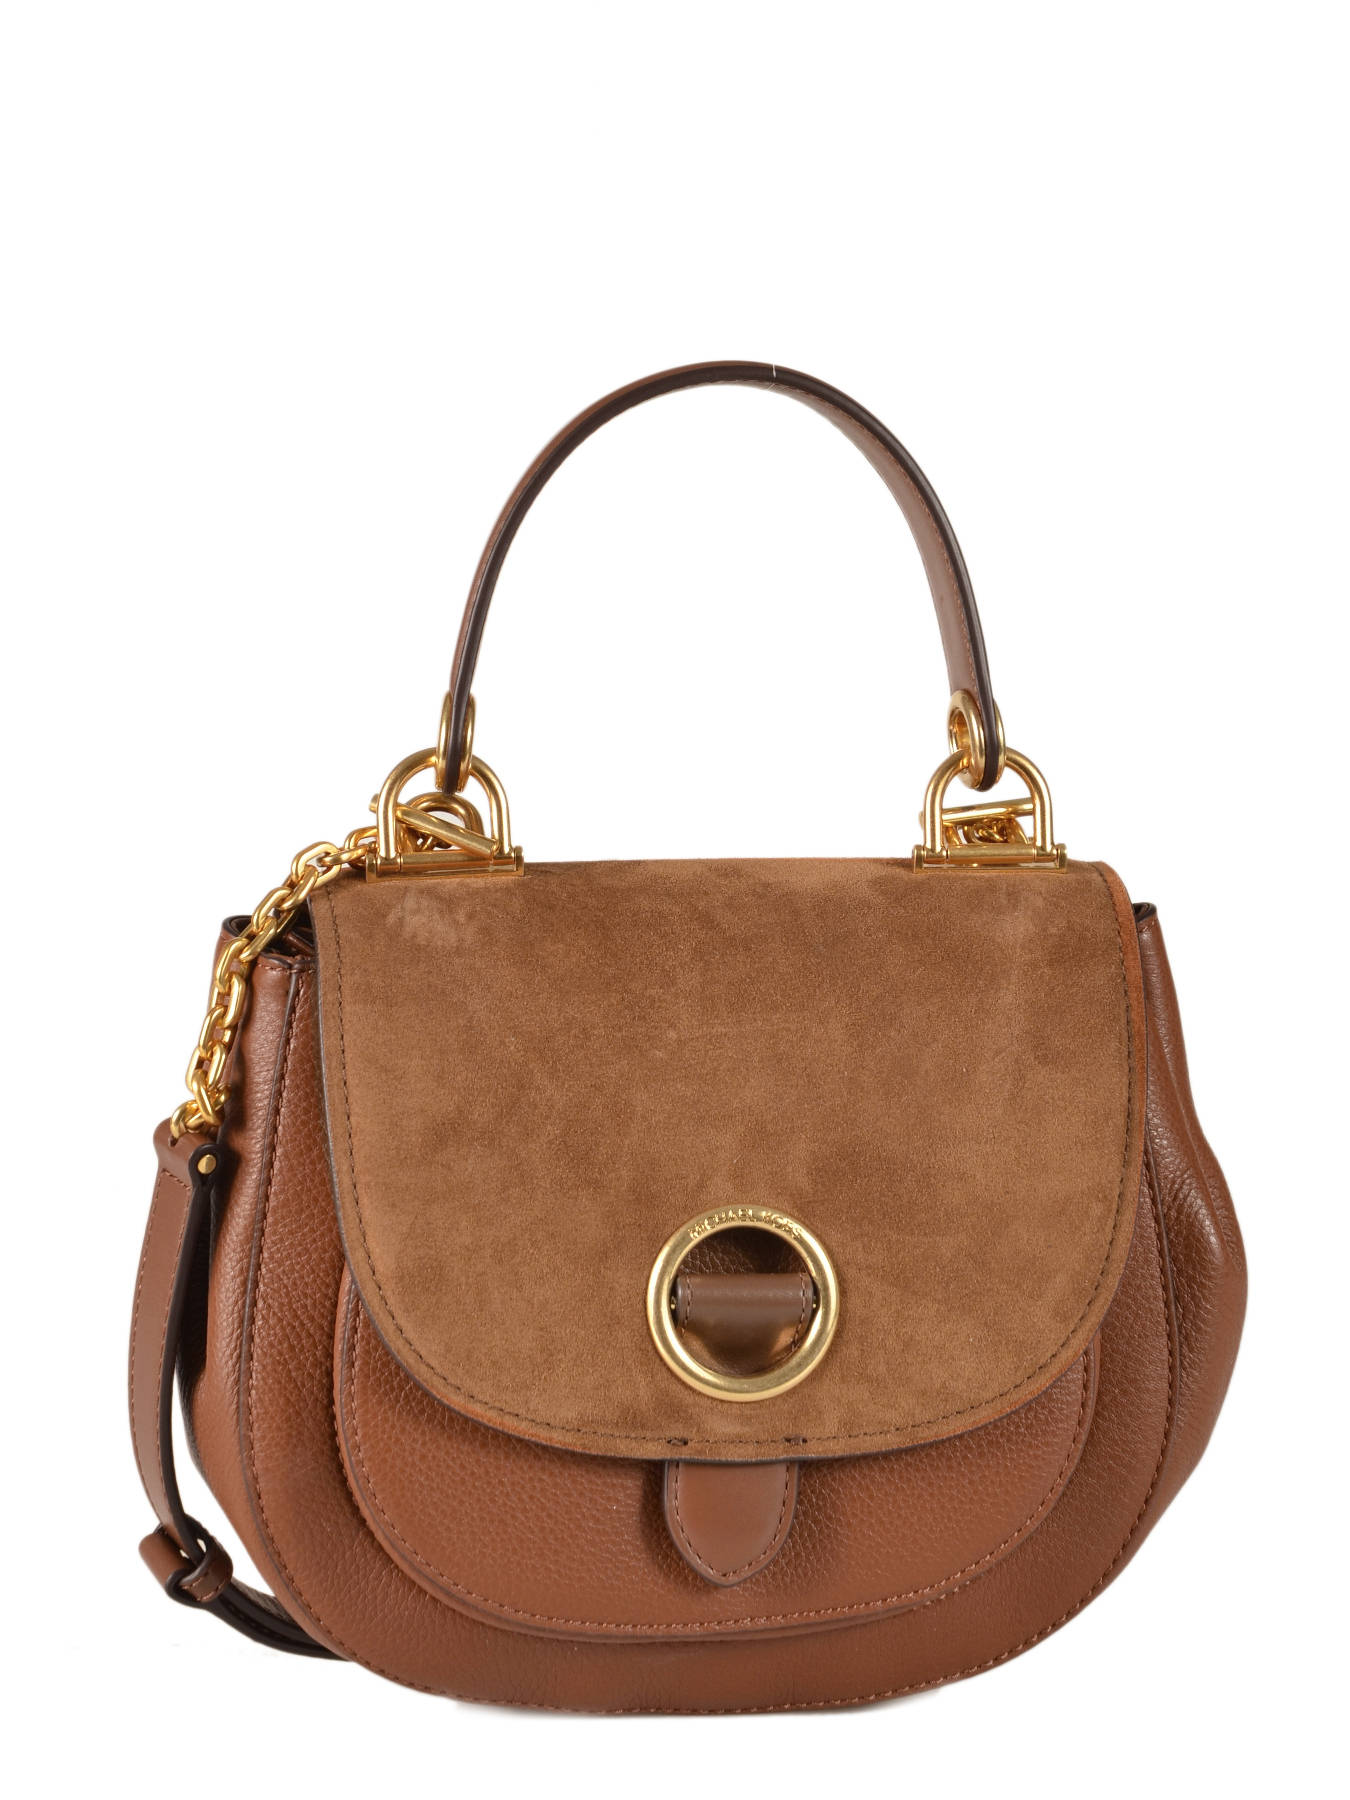 Sac A Main Besace Michael Kors : Michael kors bag isadore best prices